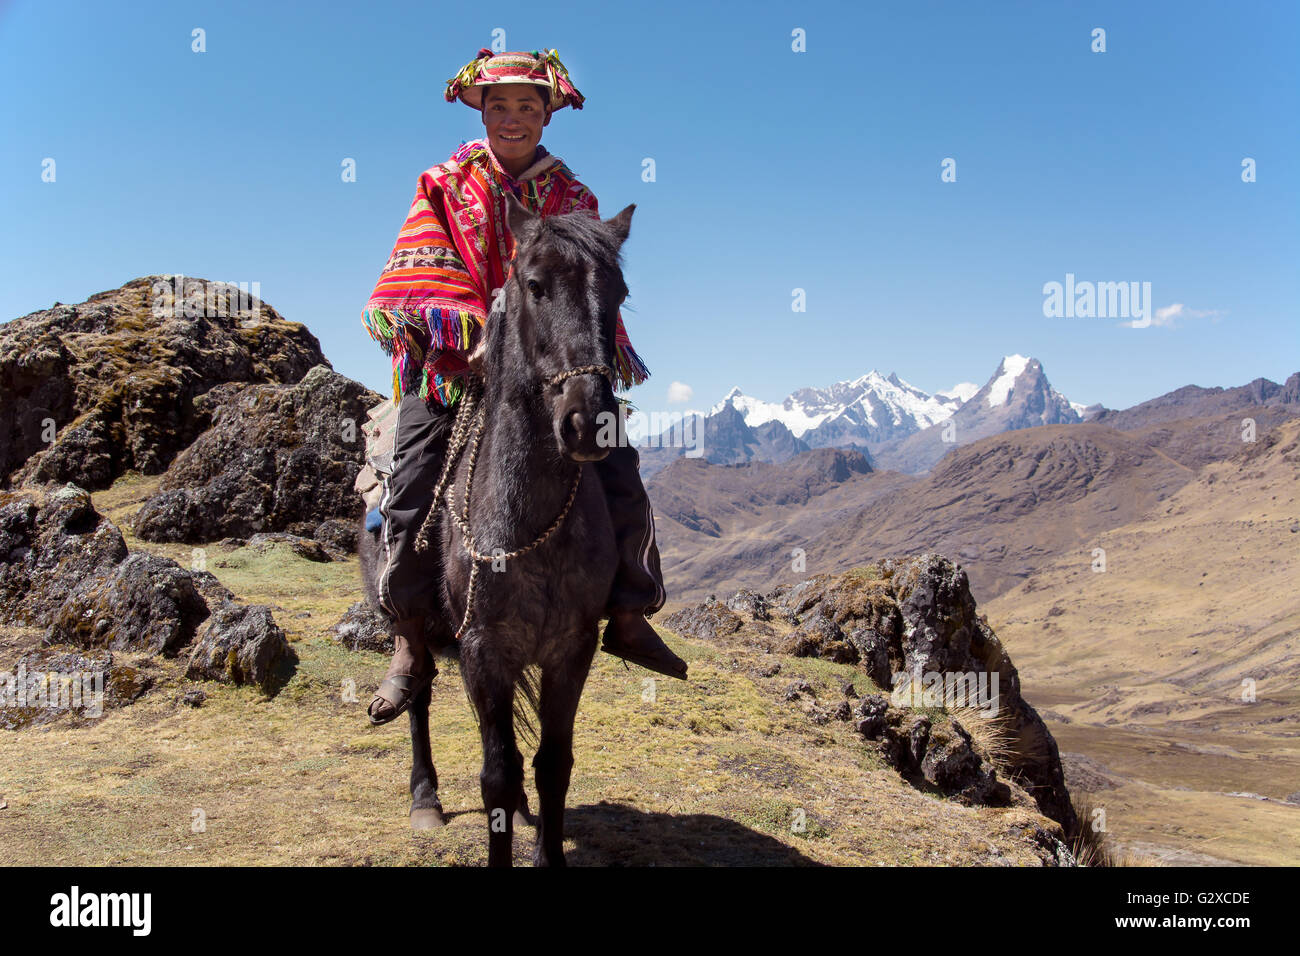 Mountain living near cusco peru royalty free stock photo - Indio Mountain Guide With Colorful Poncho Riding On Horse In The Mountains Andes Lares Near Cusco Peru